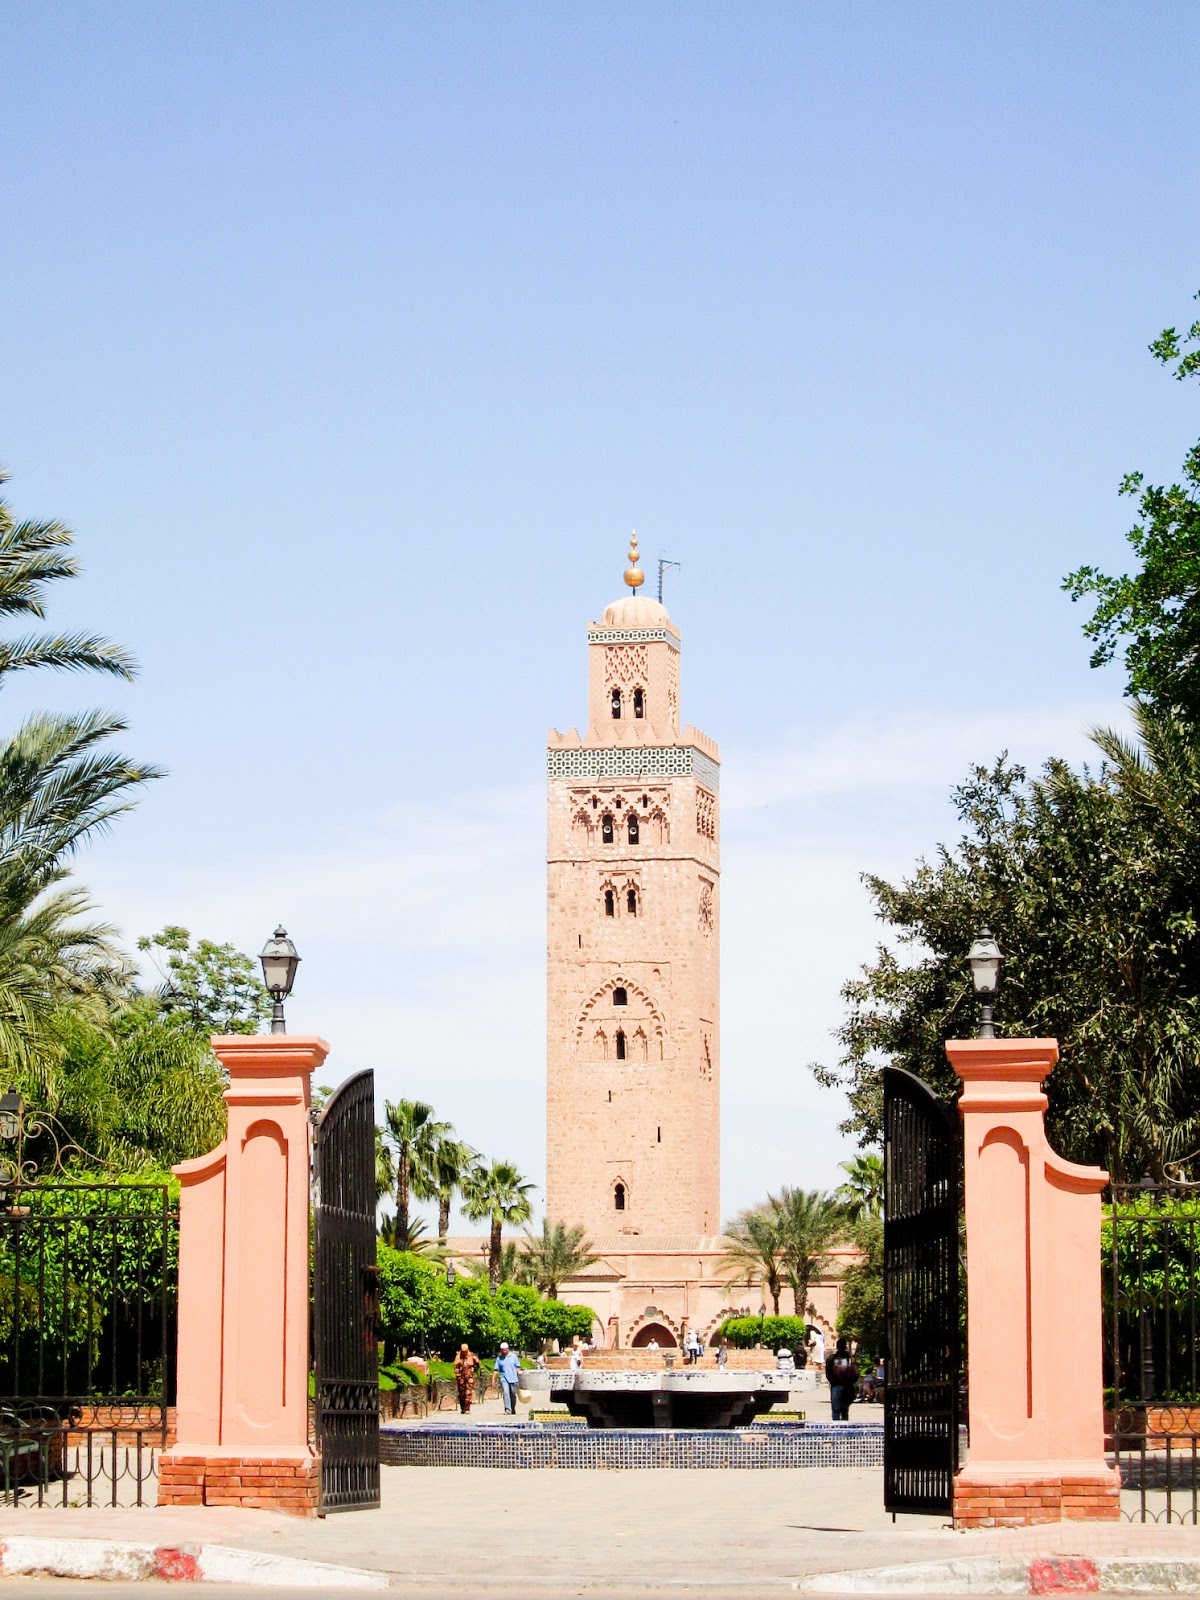 top tourist attractions of Marrkech, Morocco: Koutoubia Mosque seen from yet another angle